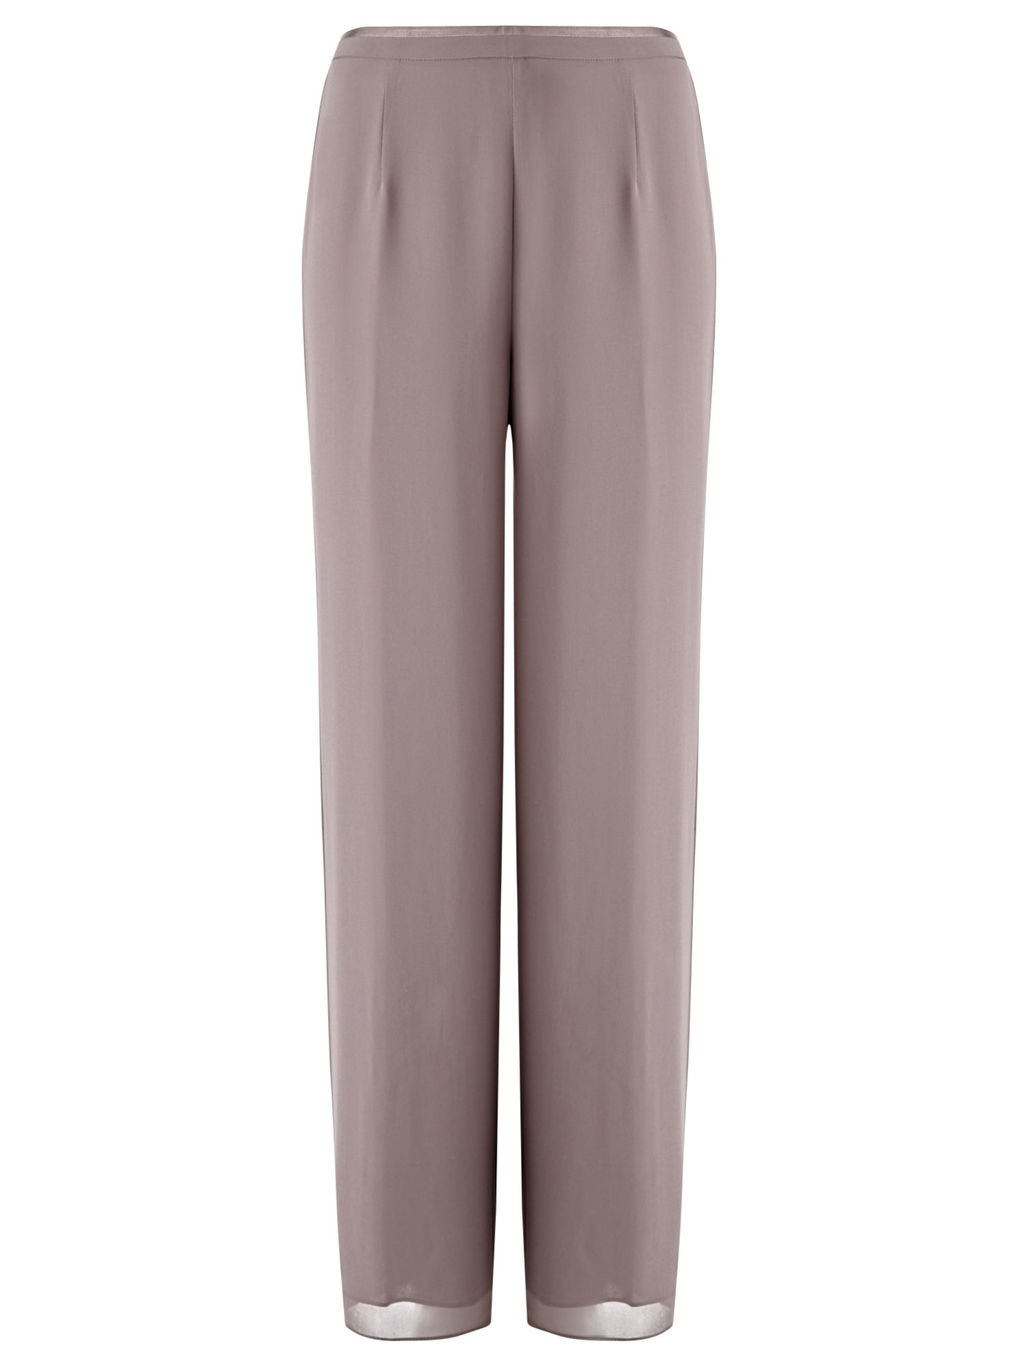 Grosgrain Trouser - length: standard; pattern: plain; waist: mid/regular rise; predominant colour: taupe; fibres: polyester/polyamide - 100%; occasions: occasion; texture group: sheer fabrics/chiffon/organza etc.; fit: wide leg; pattern type: fabric; style: standard; season: s/s 2016; wardrobe: event